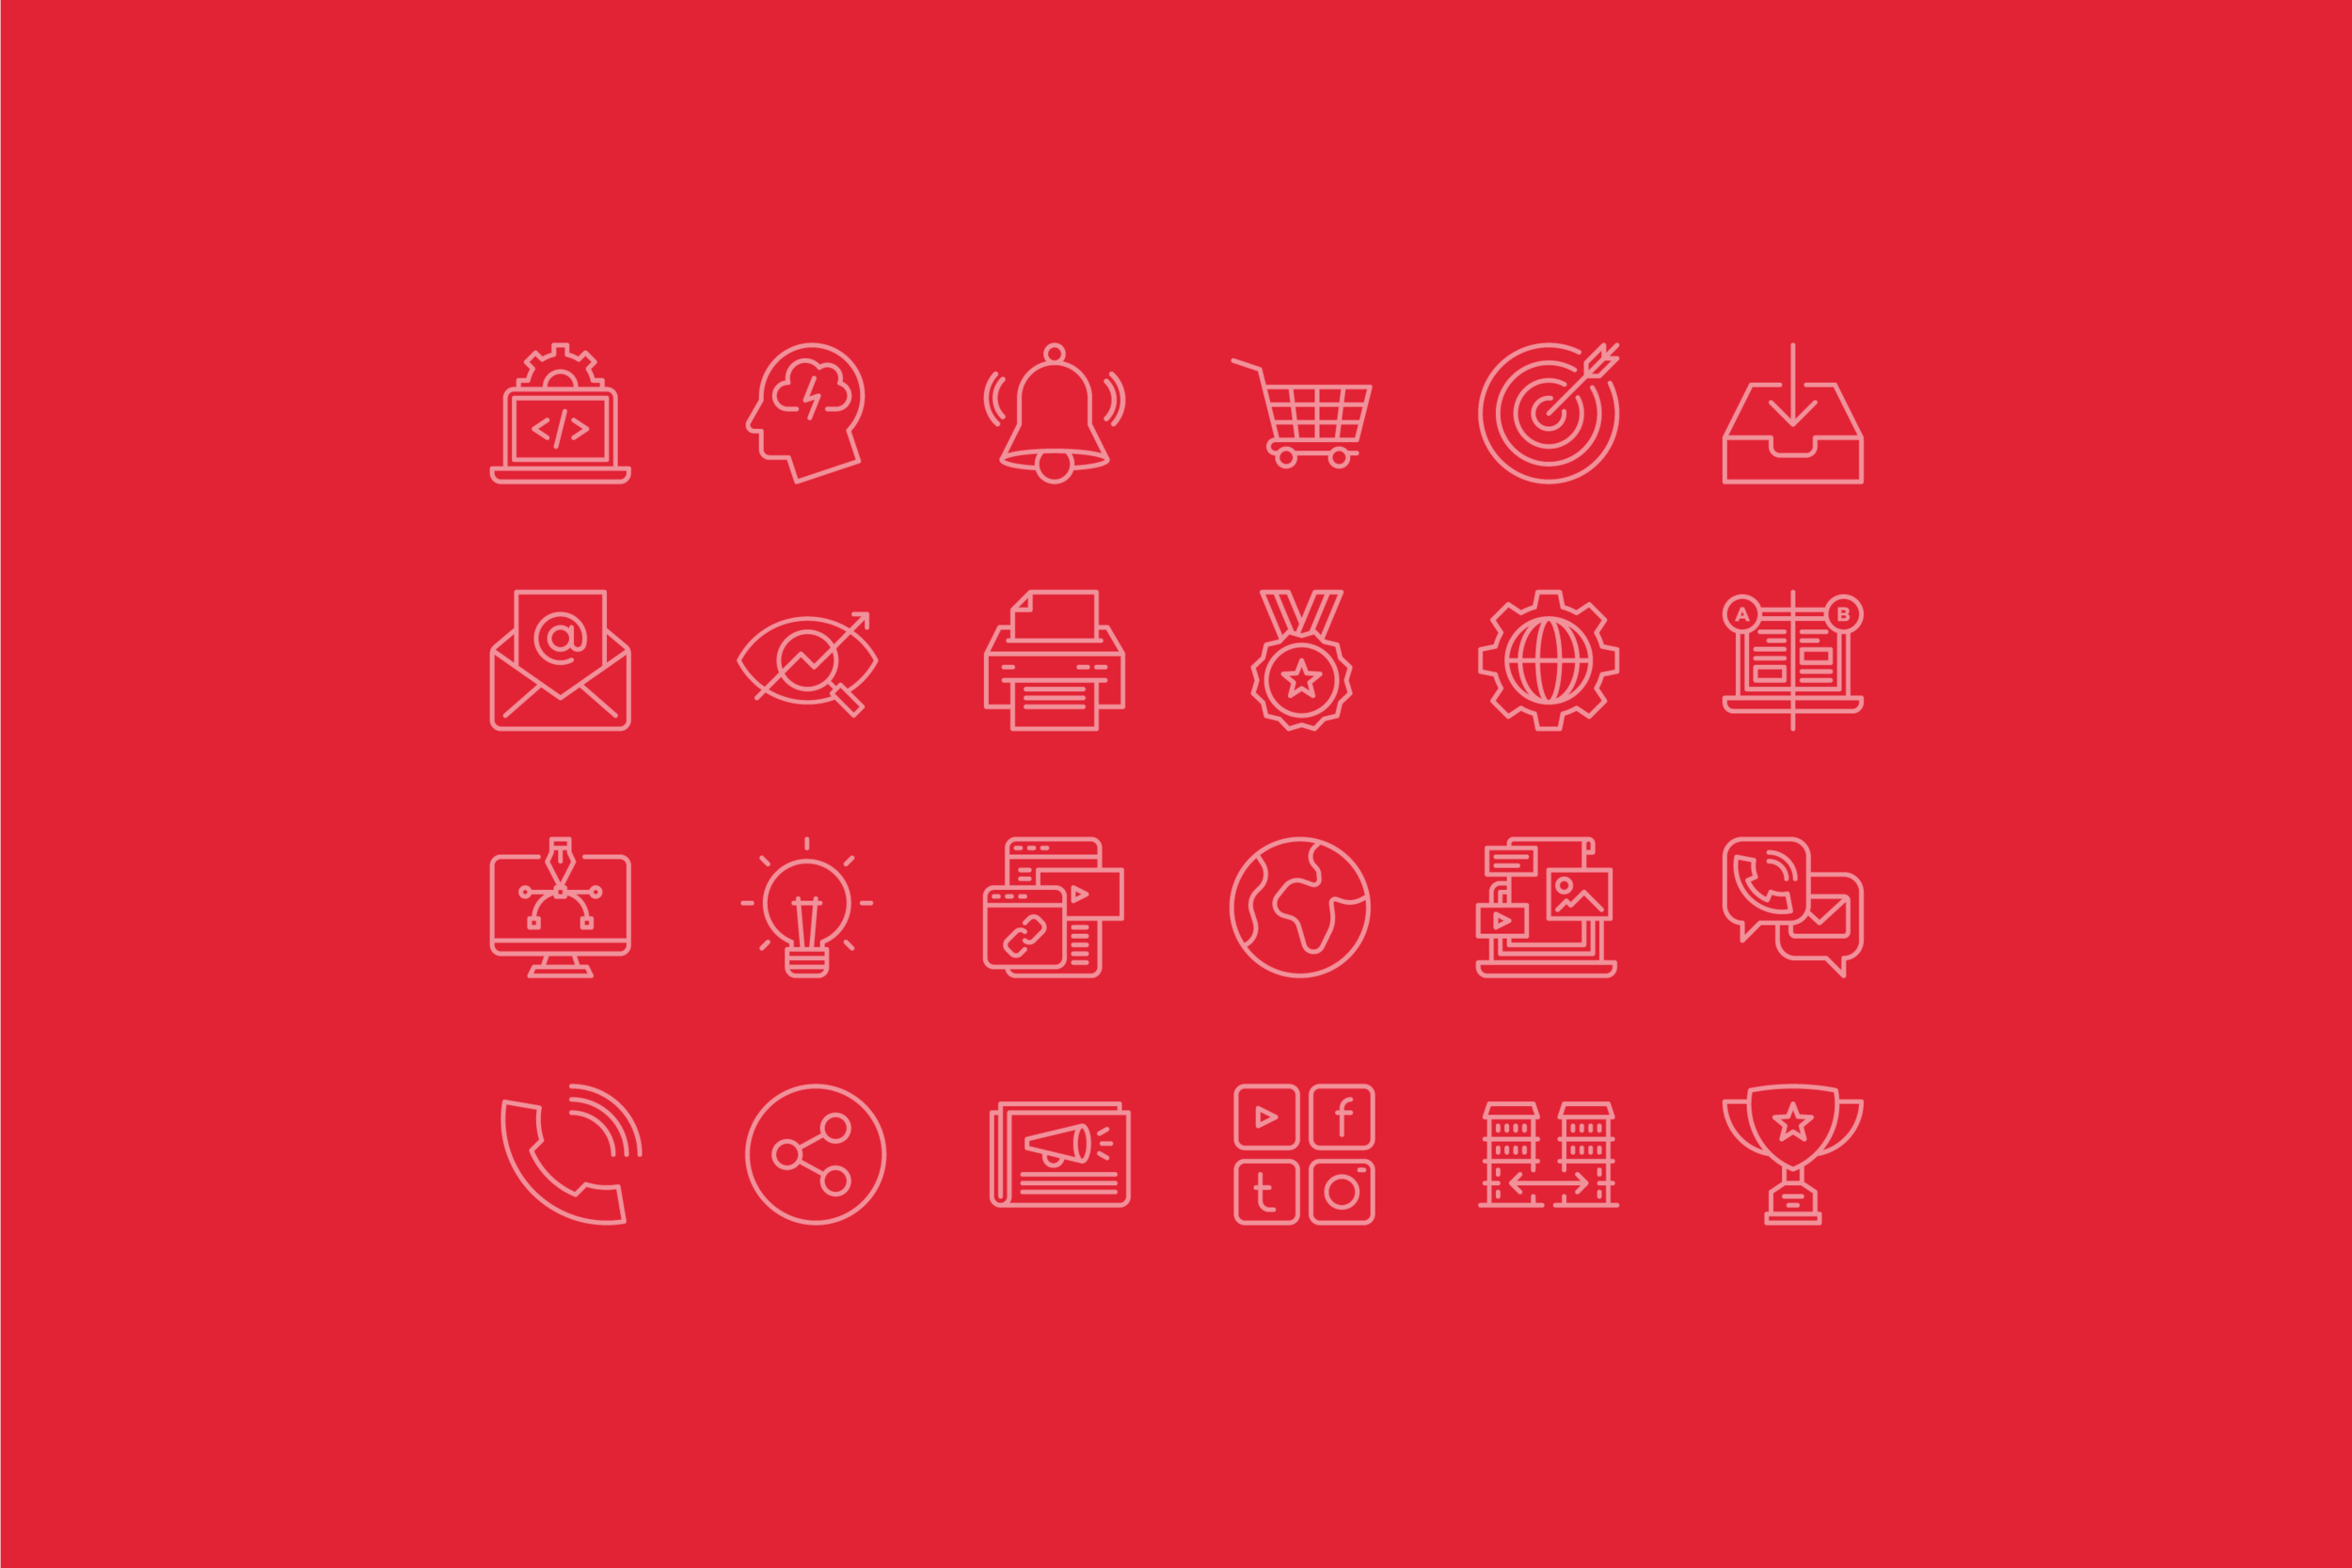 icons_and_badges_6.png